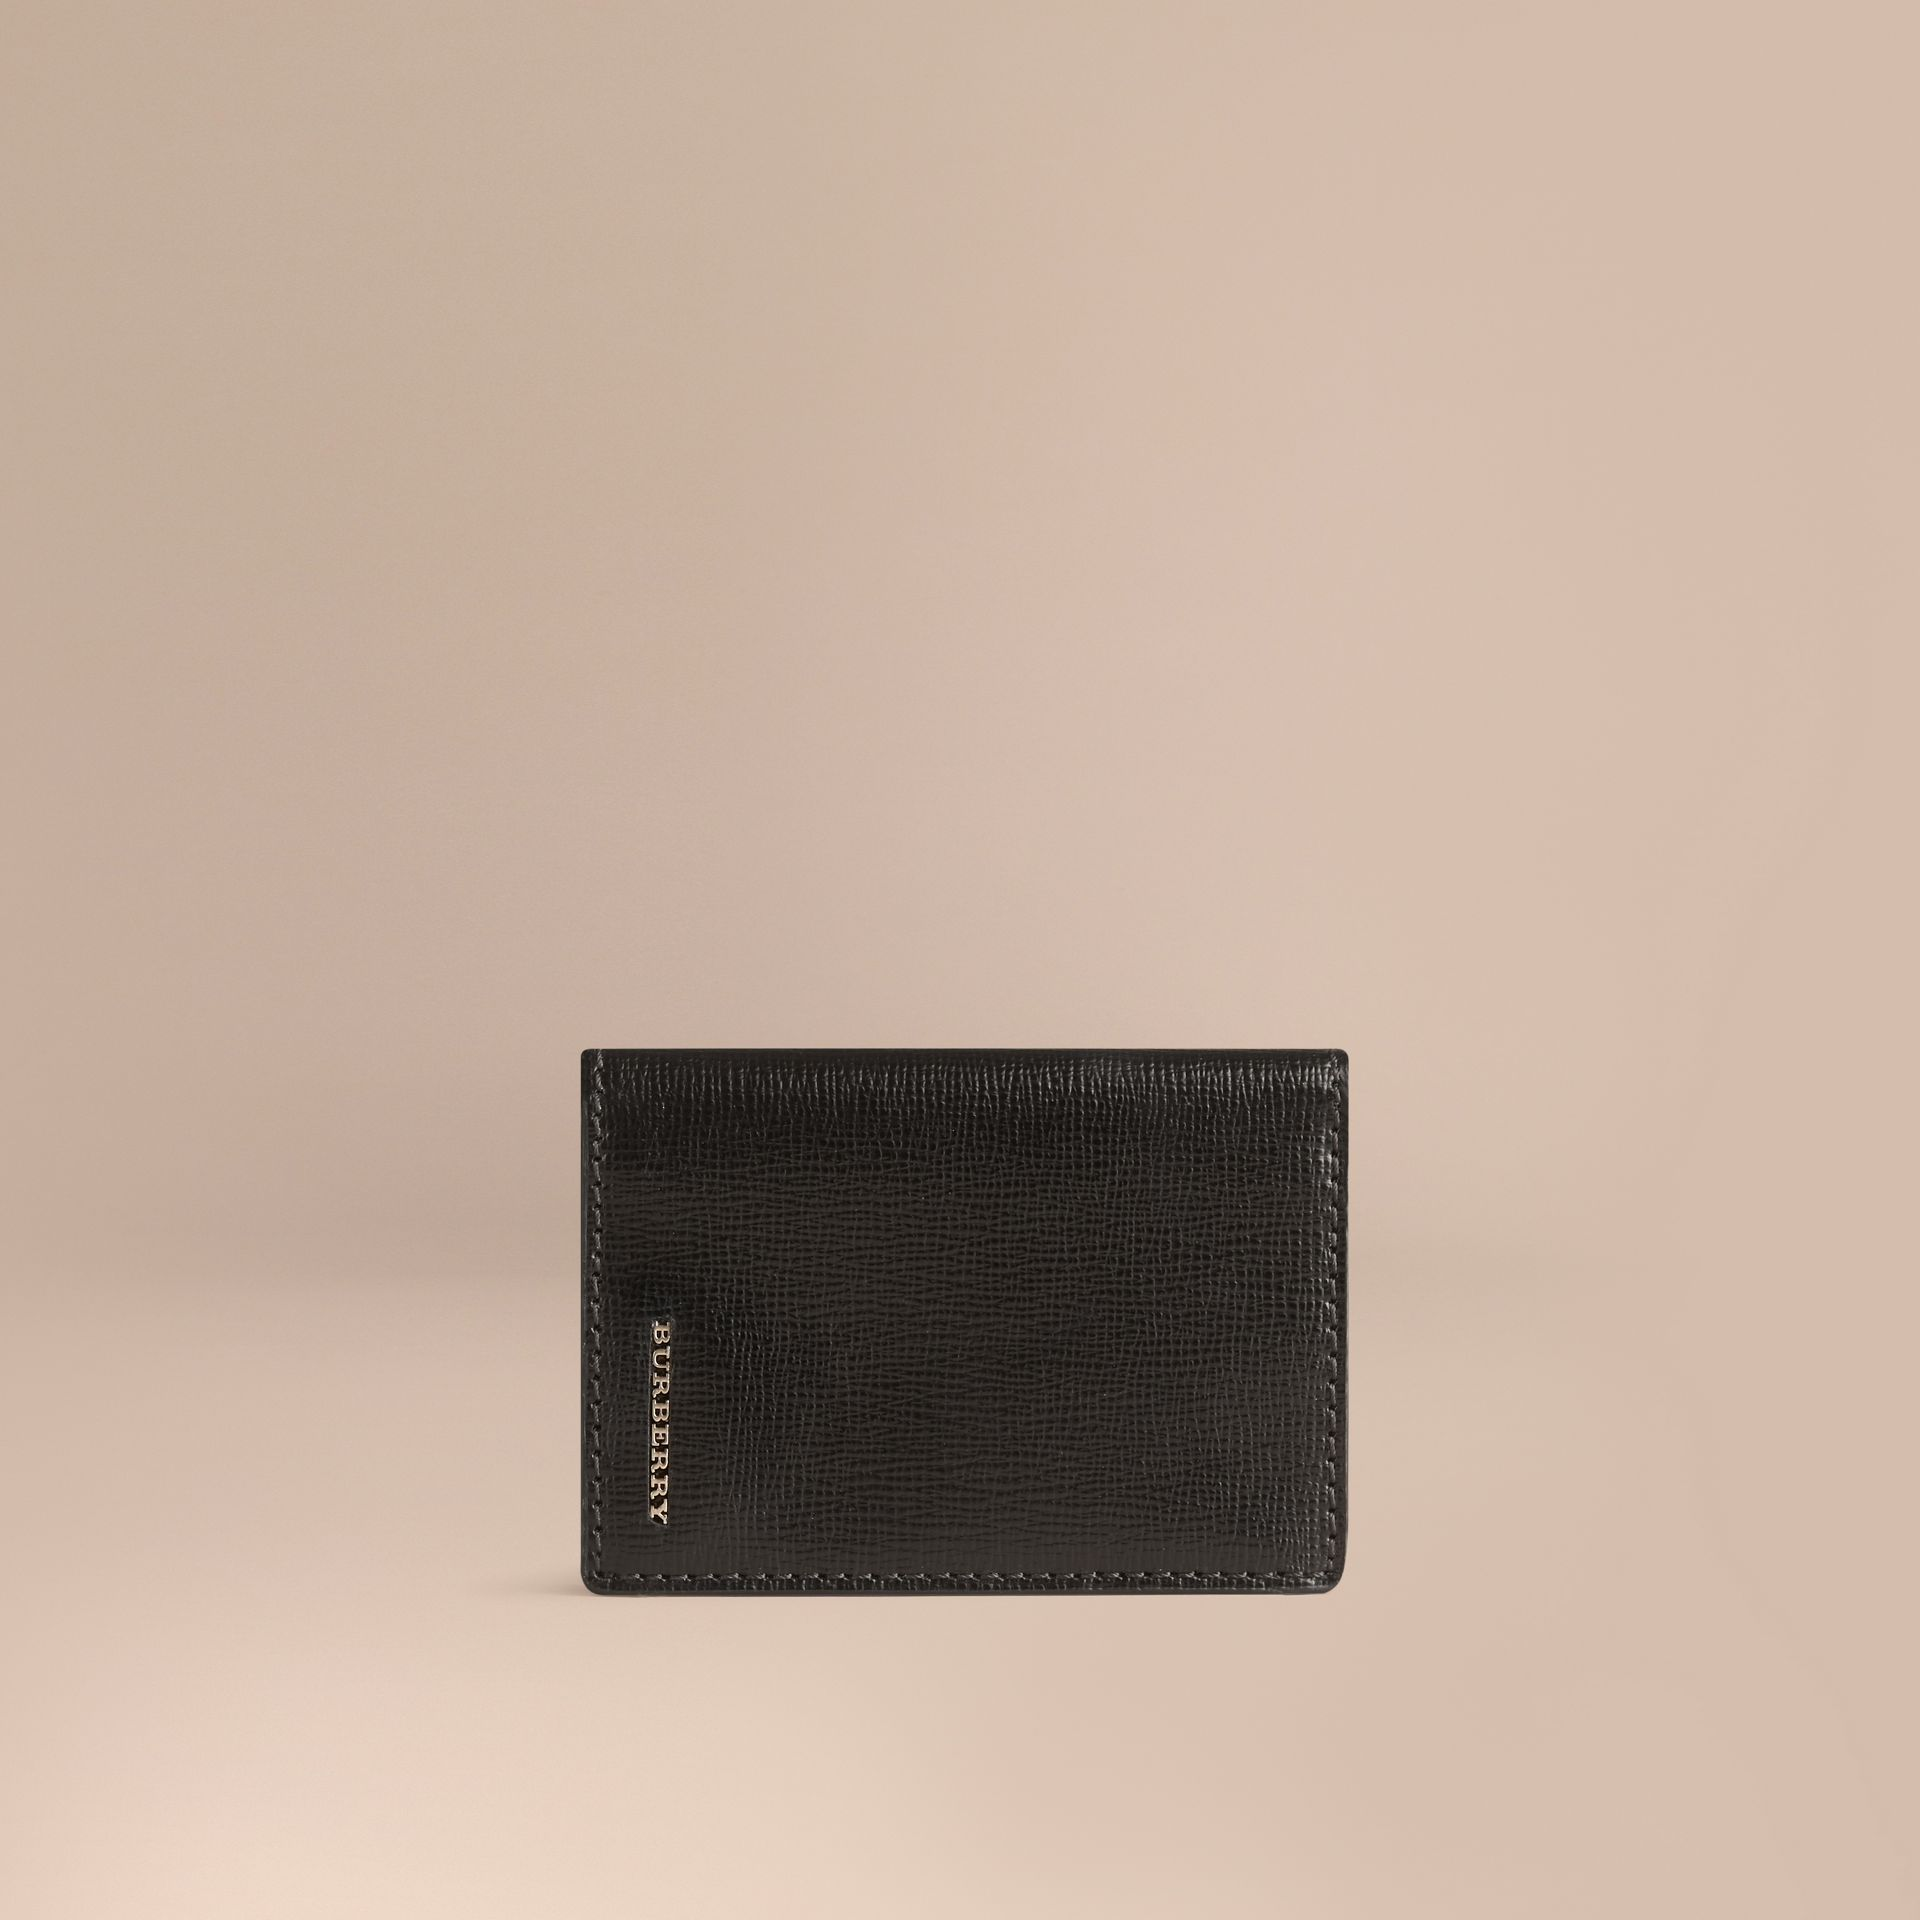 London Leather Folding Card Case in Black - gallery image 1